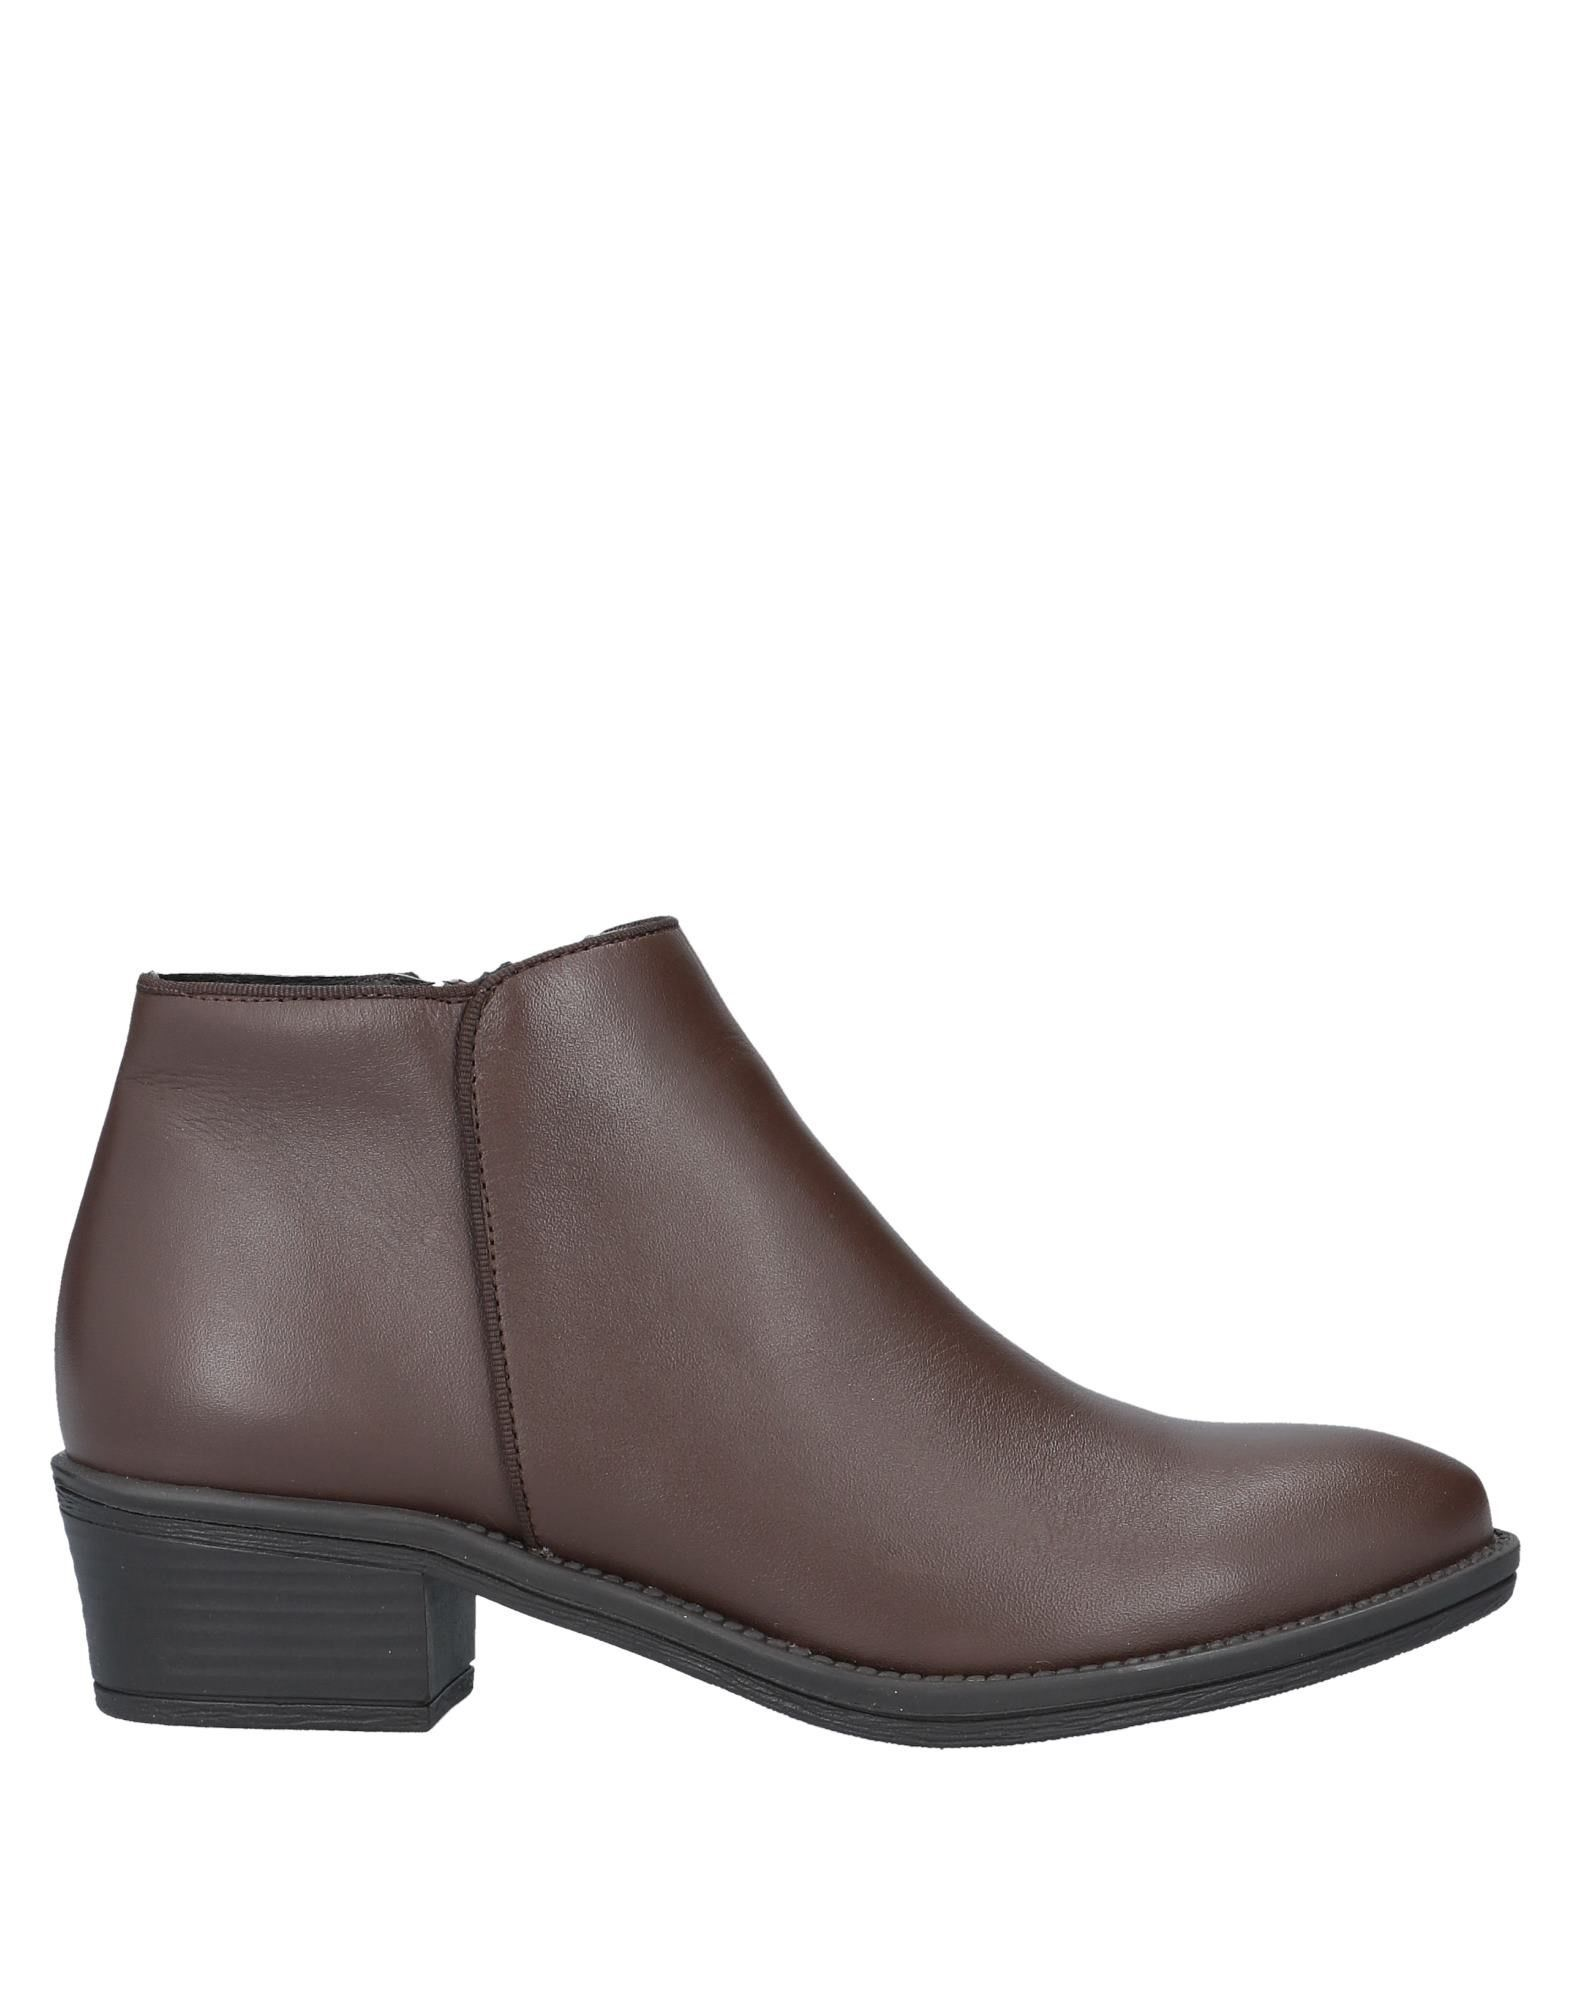 Cuplé Women's Ankle Boots Cocoa Leather